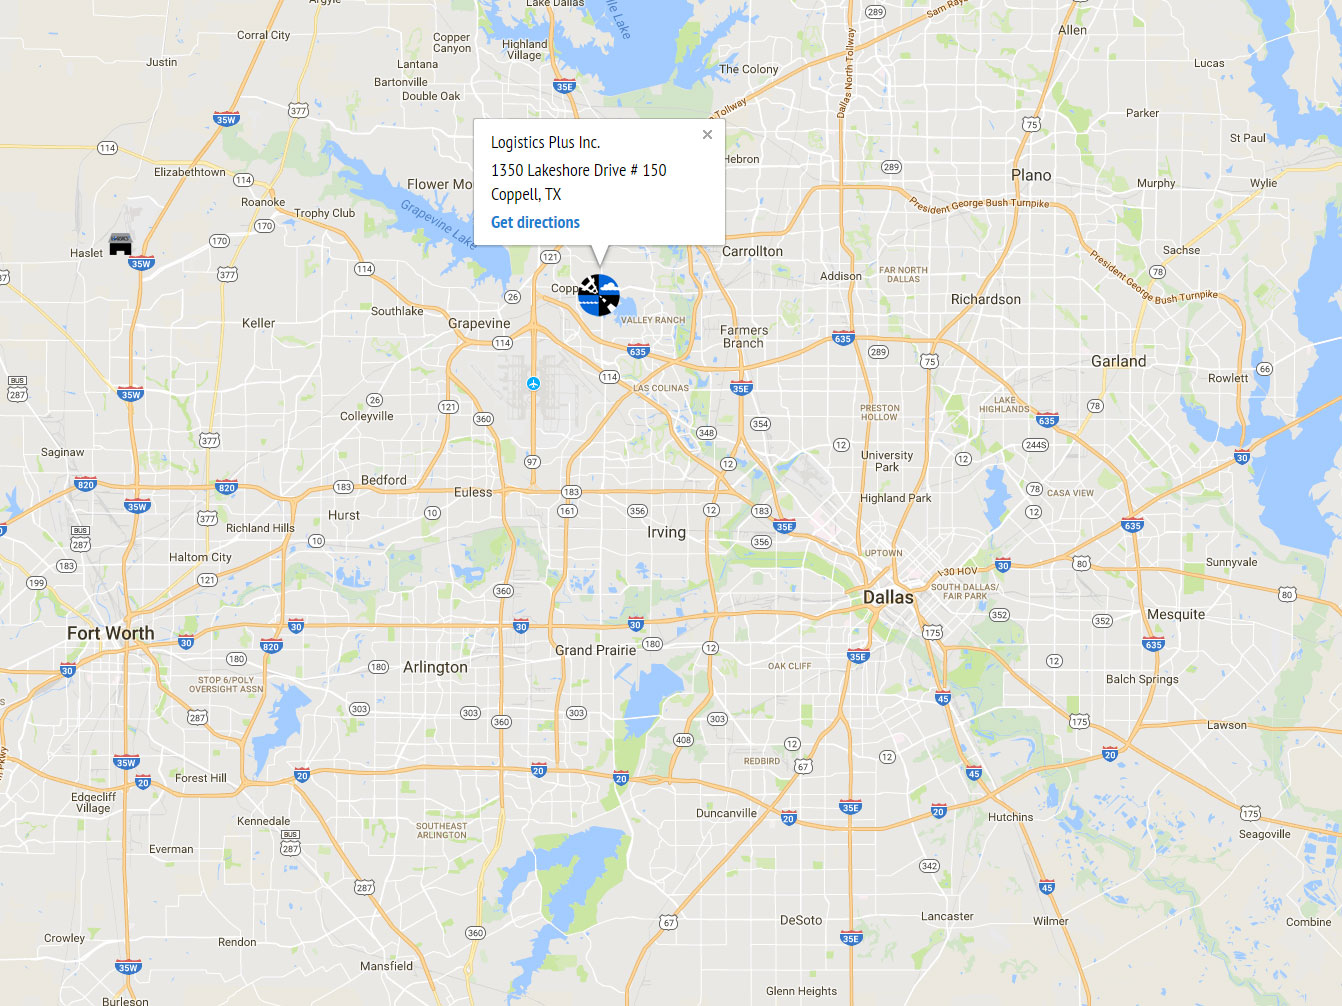 The logistics plus dallas tx office is moving to a new location publicscrutiny Choice Image